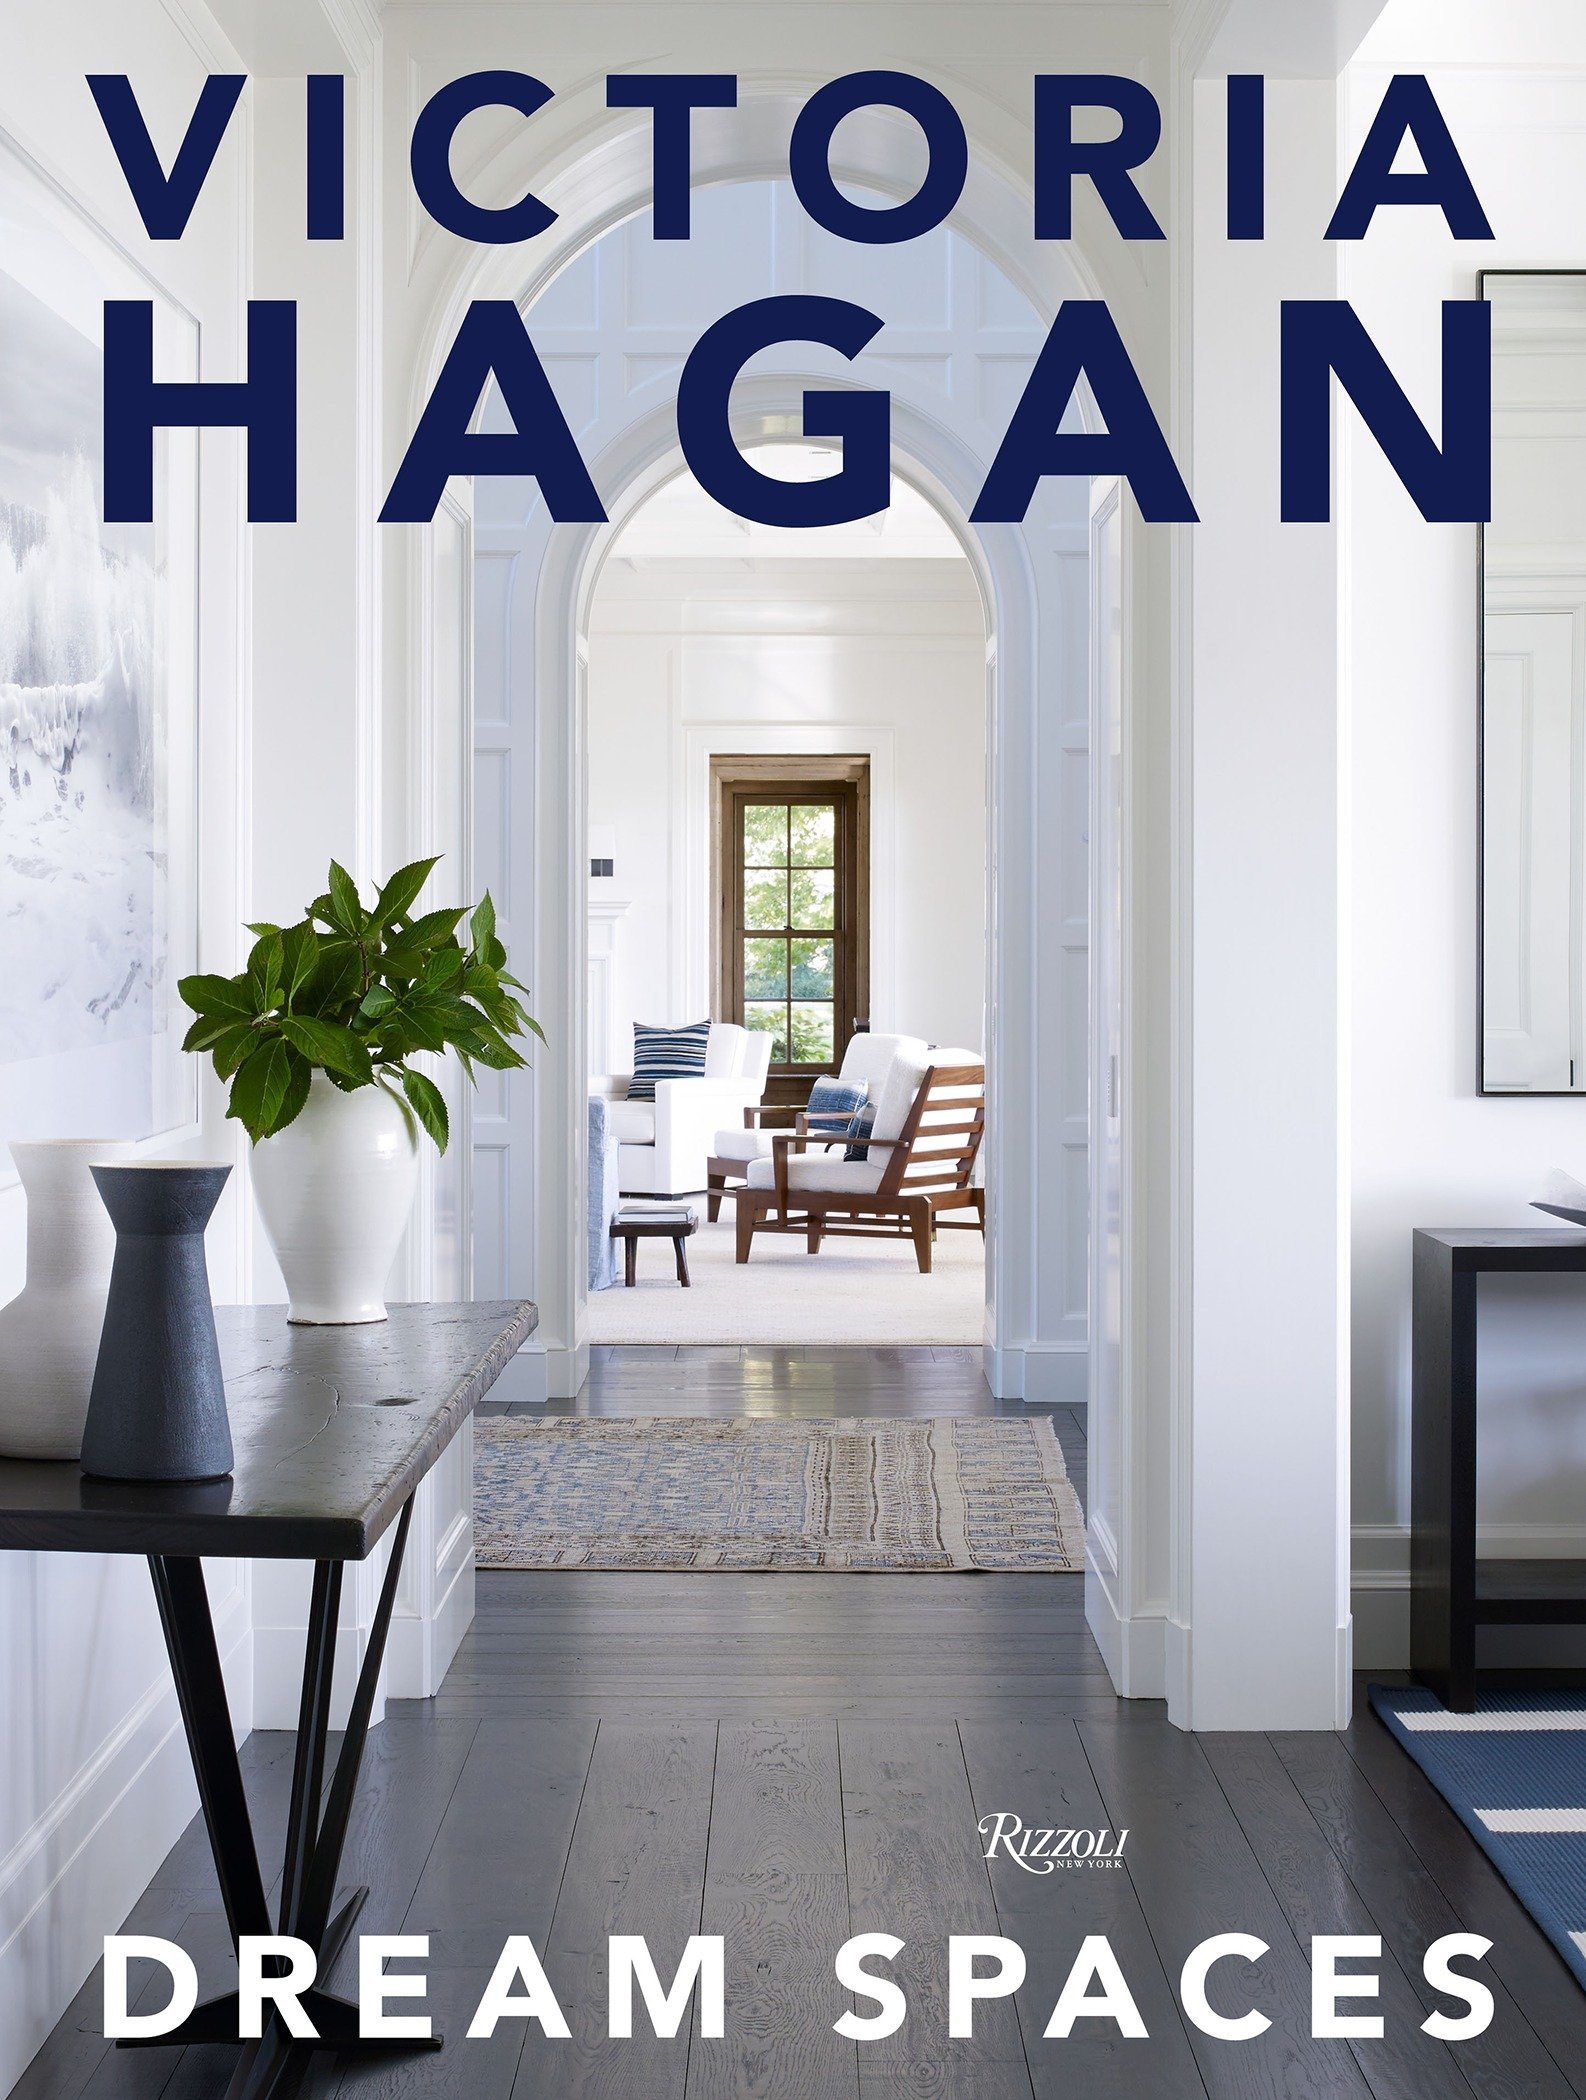 Victoria Hagan: Dream Spaces by Rizzoli